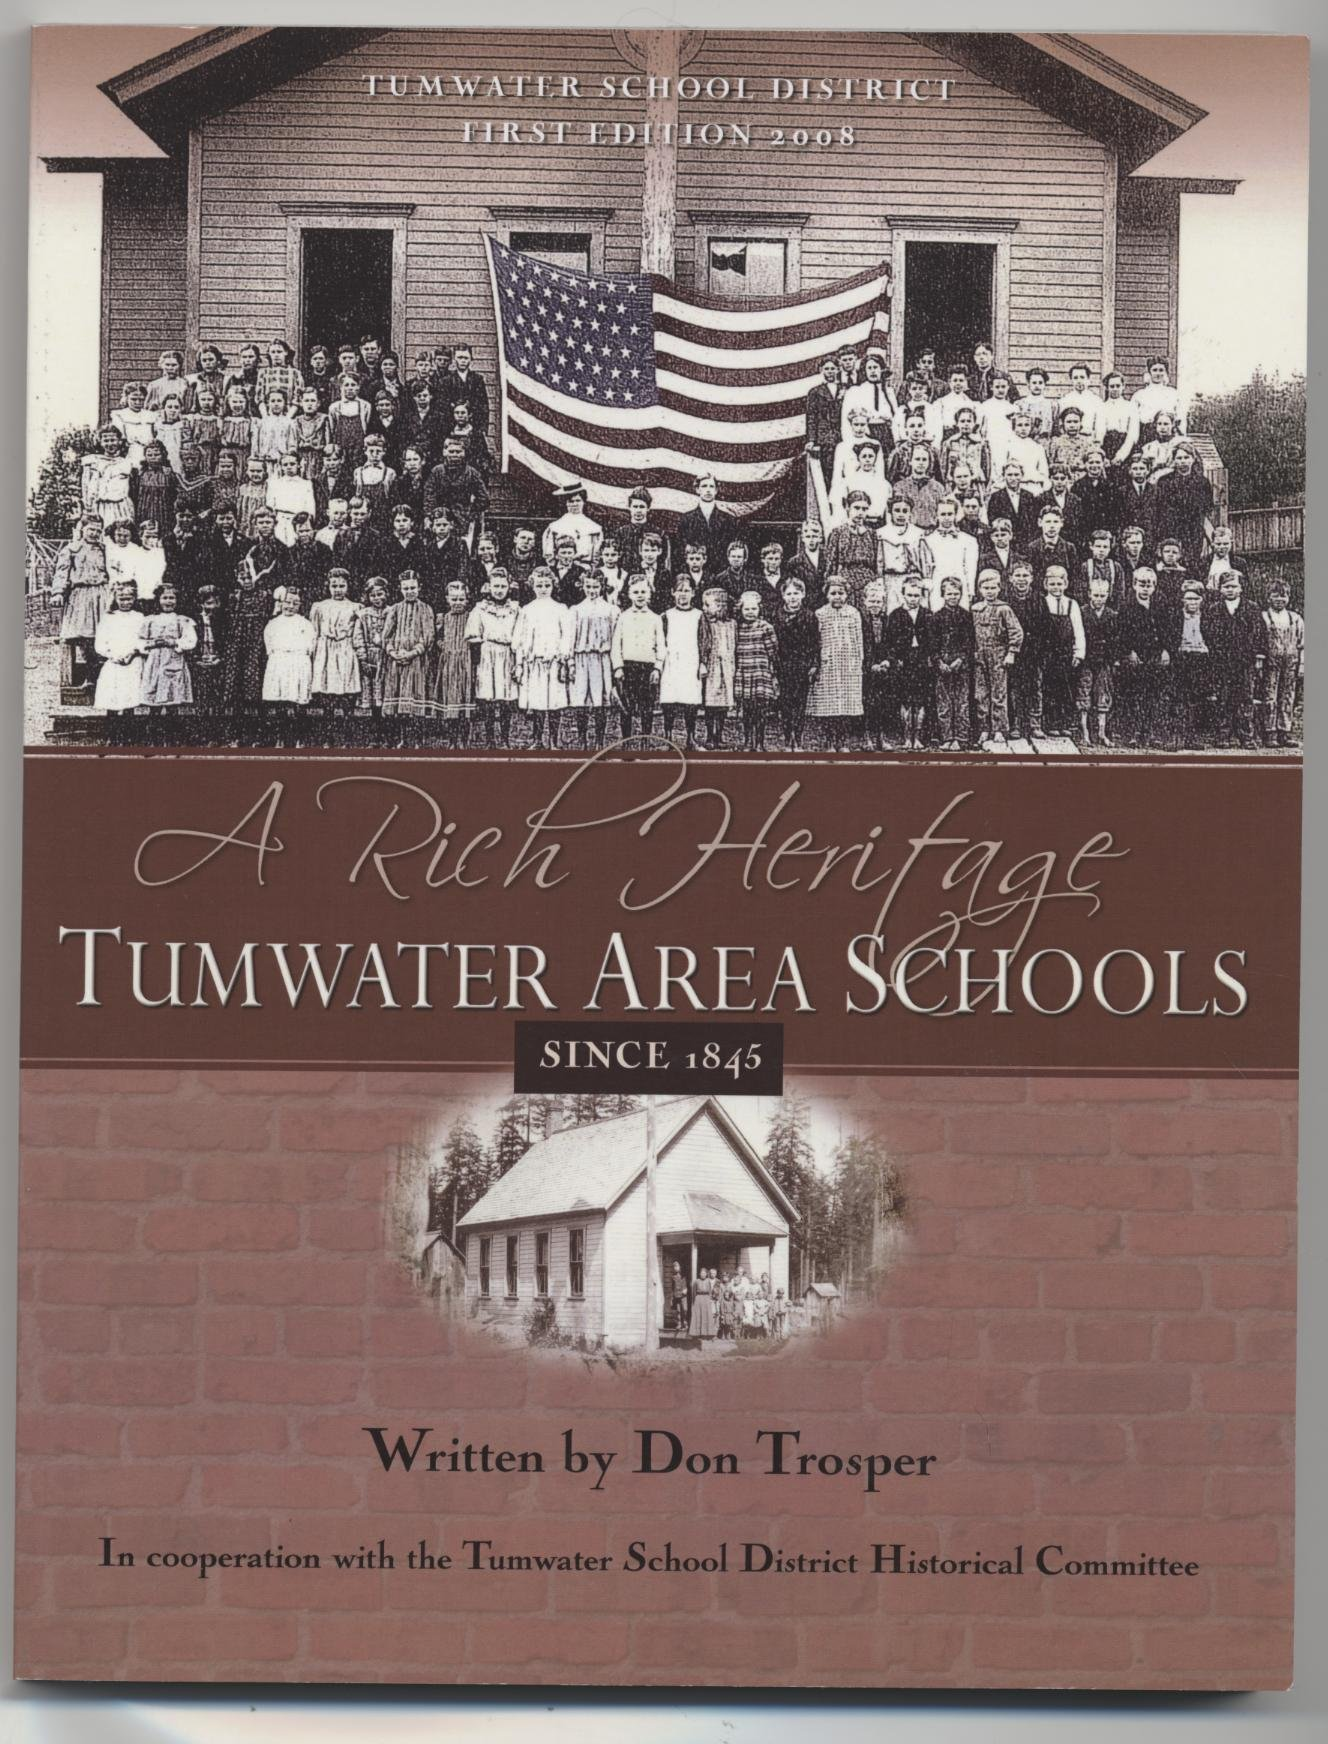 A Rich Heritage TUMWATER AREA SCHOOLS SINCE 1845: Don